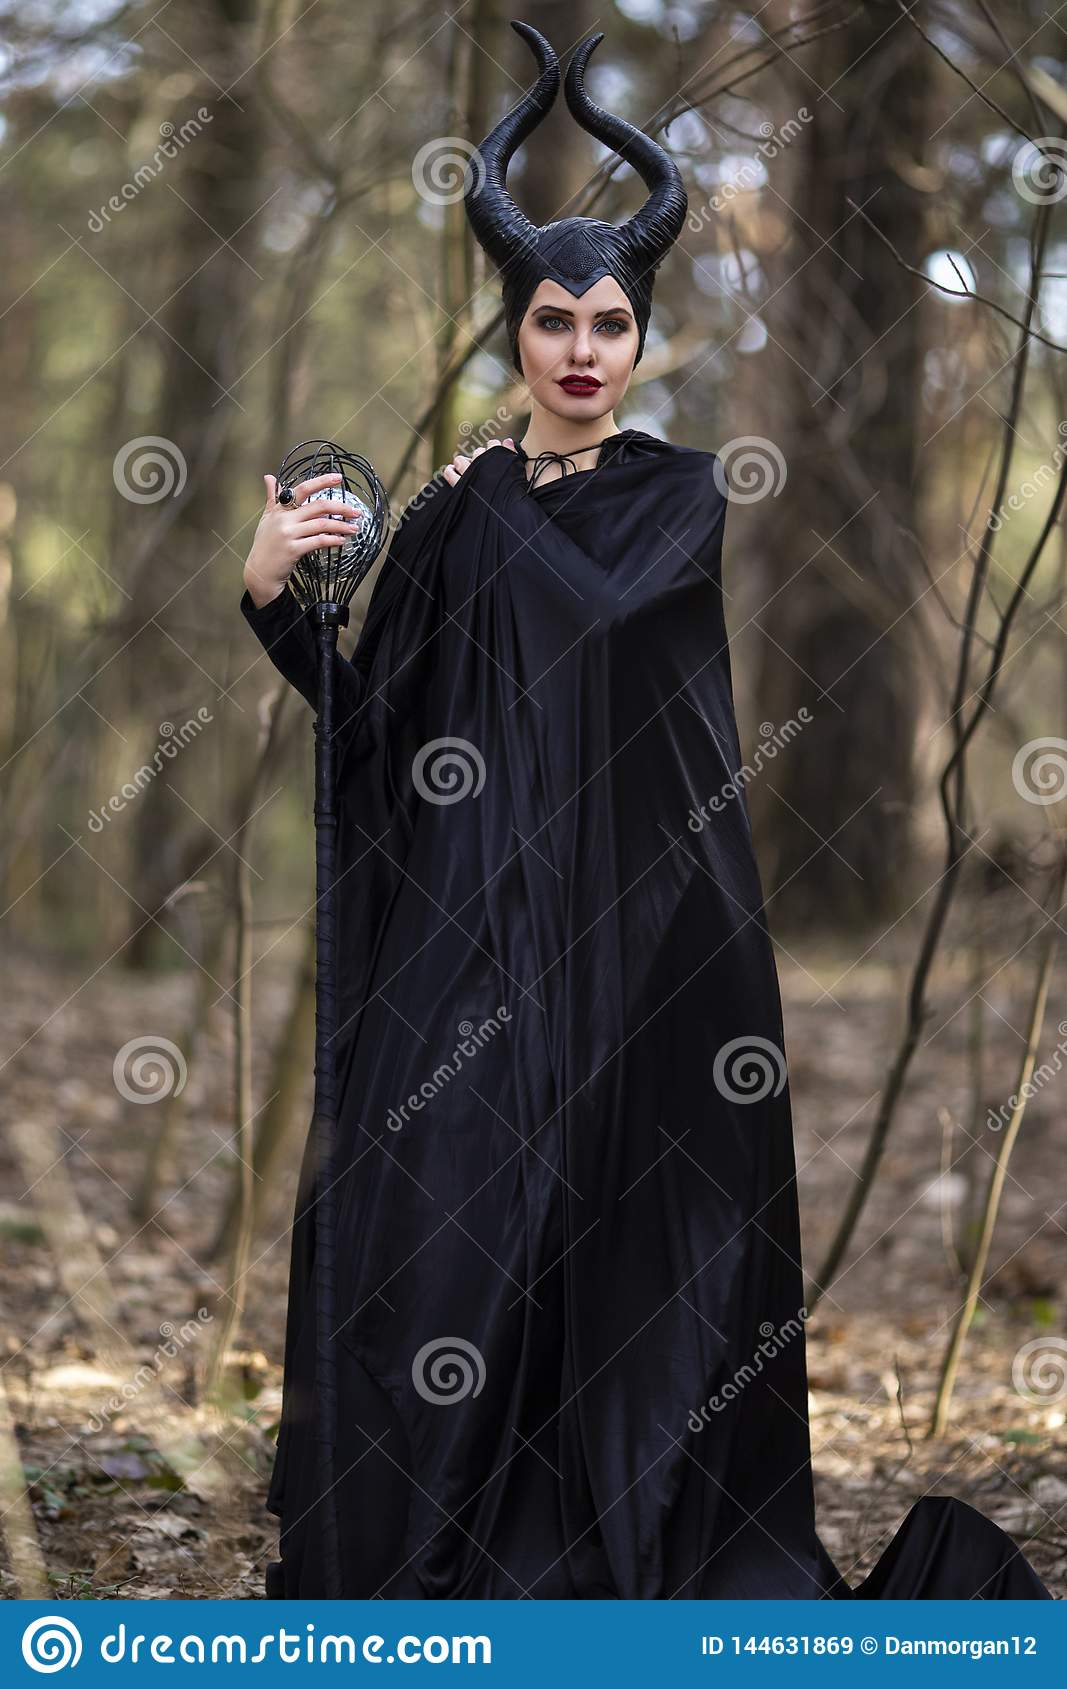 Costume Drama. Marvellous and Magical Maleficent Woman with Horns Posing in Spring Empty Forest with Crook